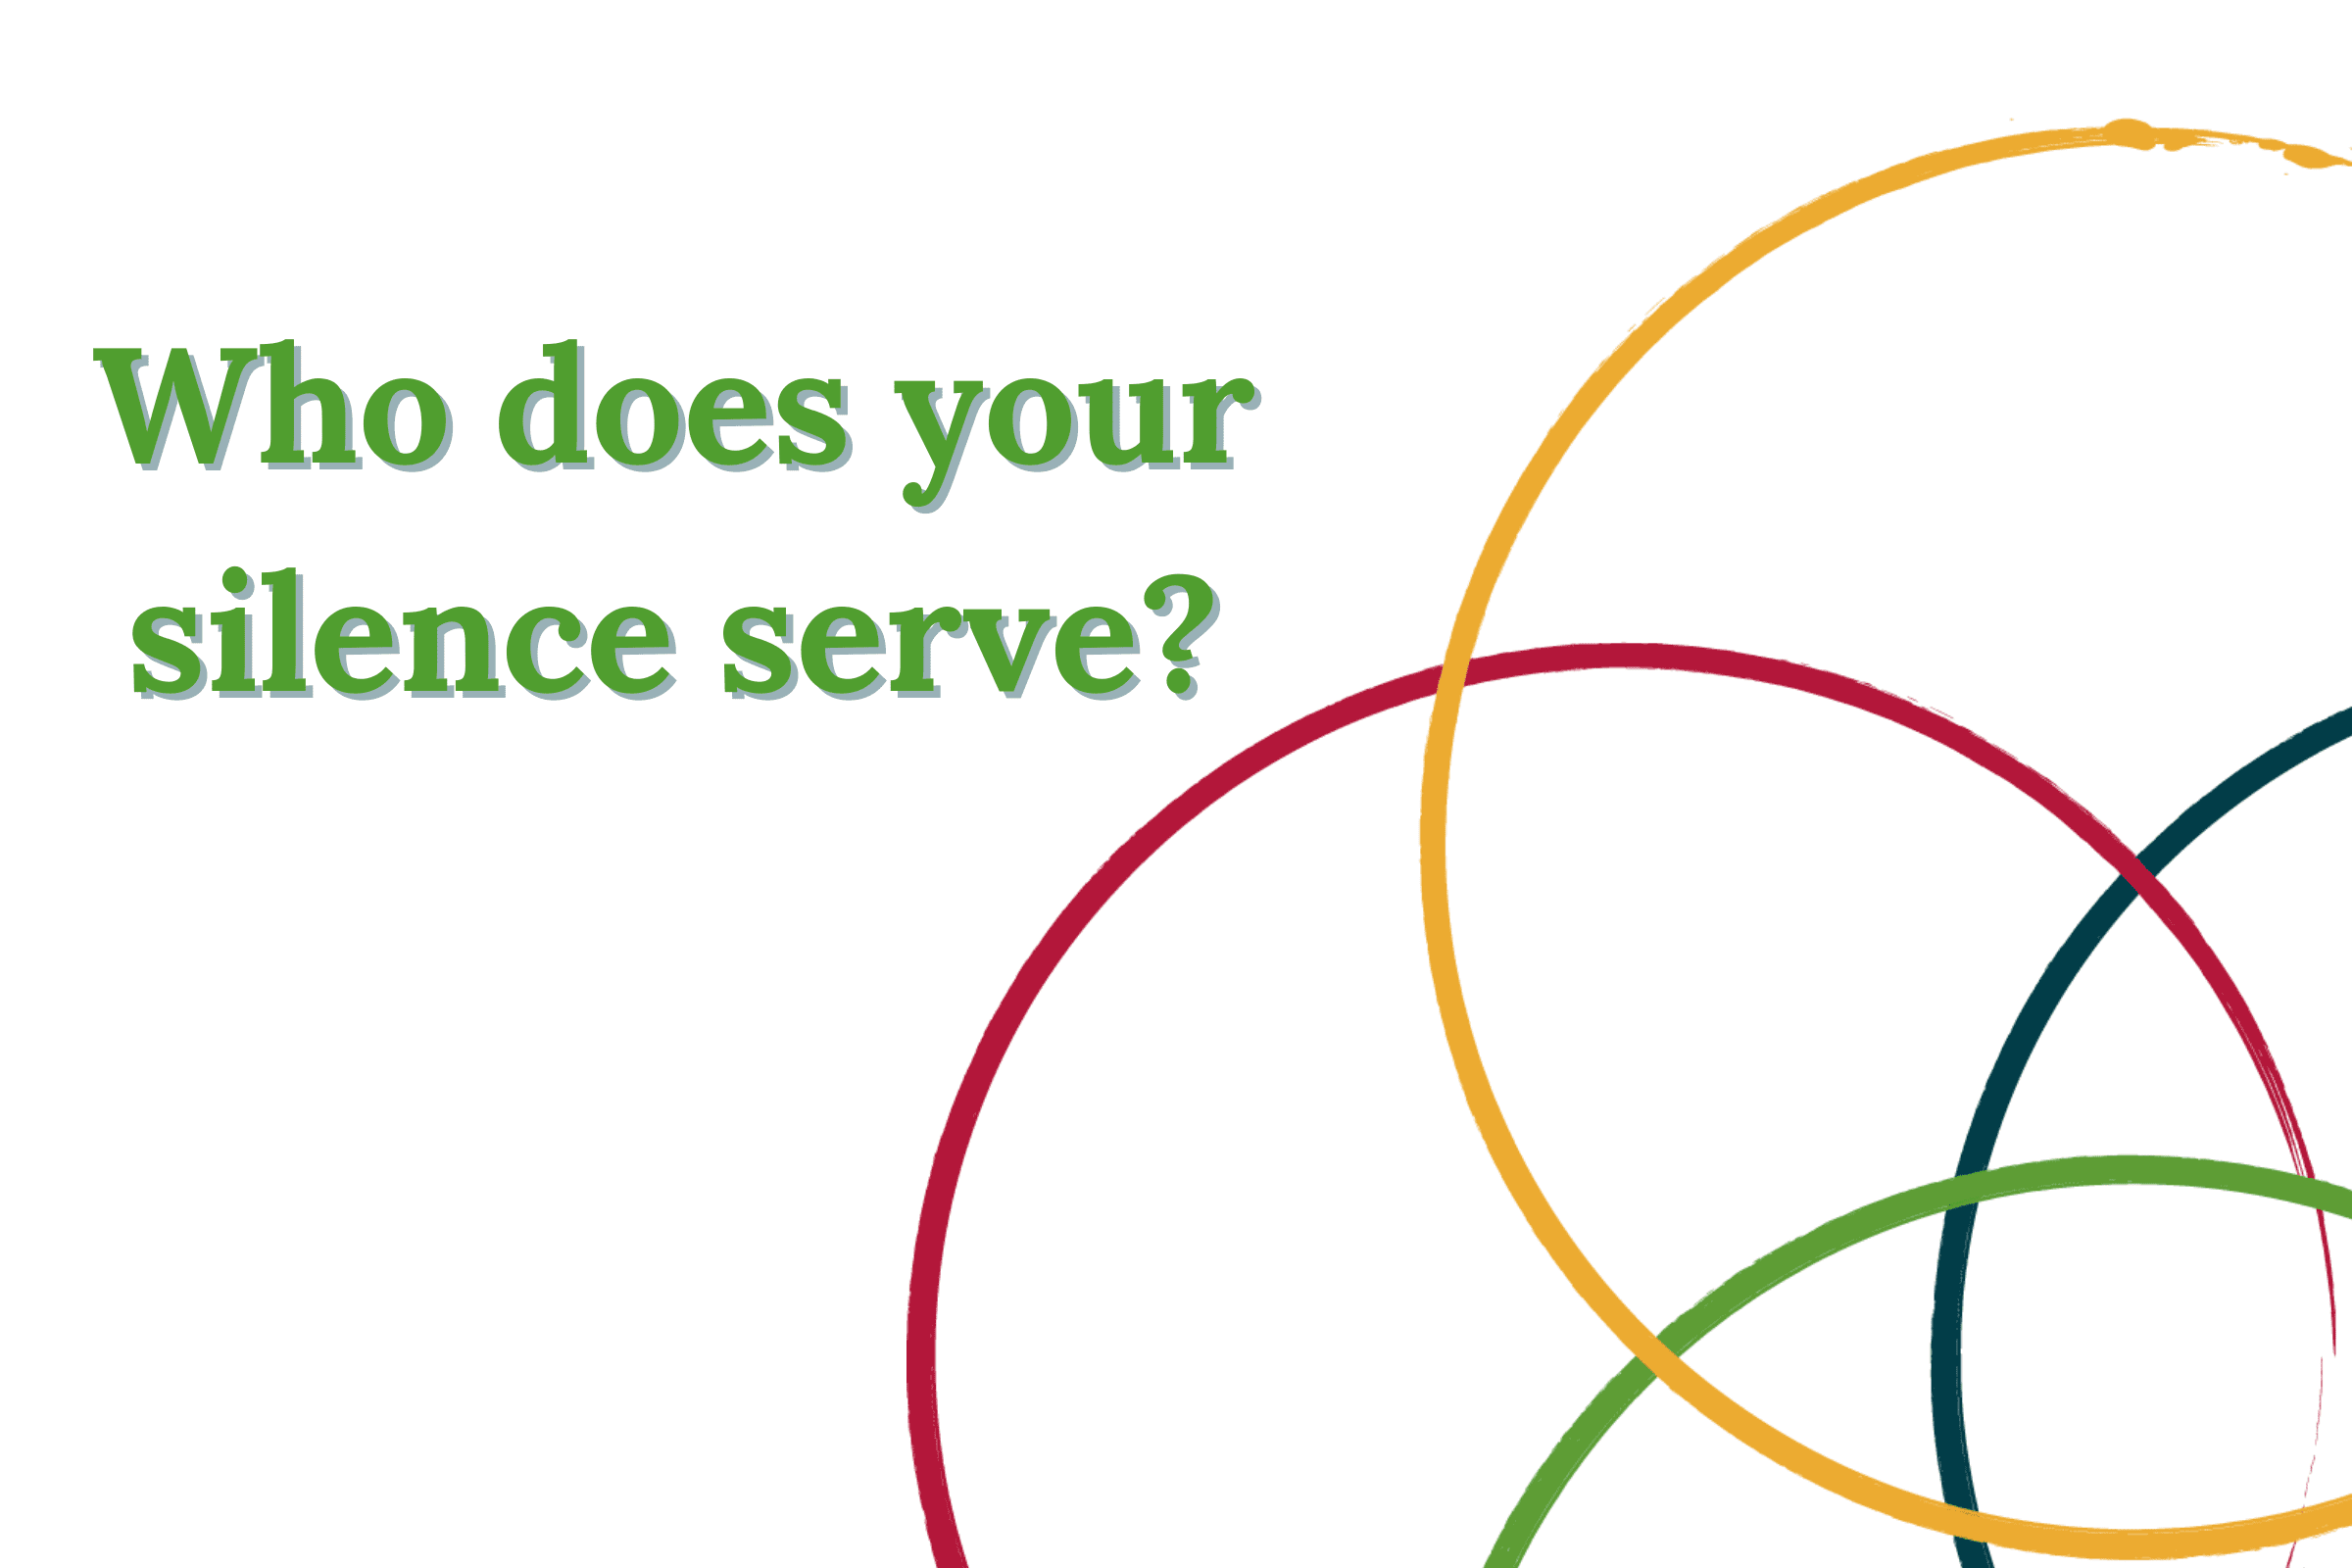 Who does your silence serve?